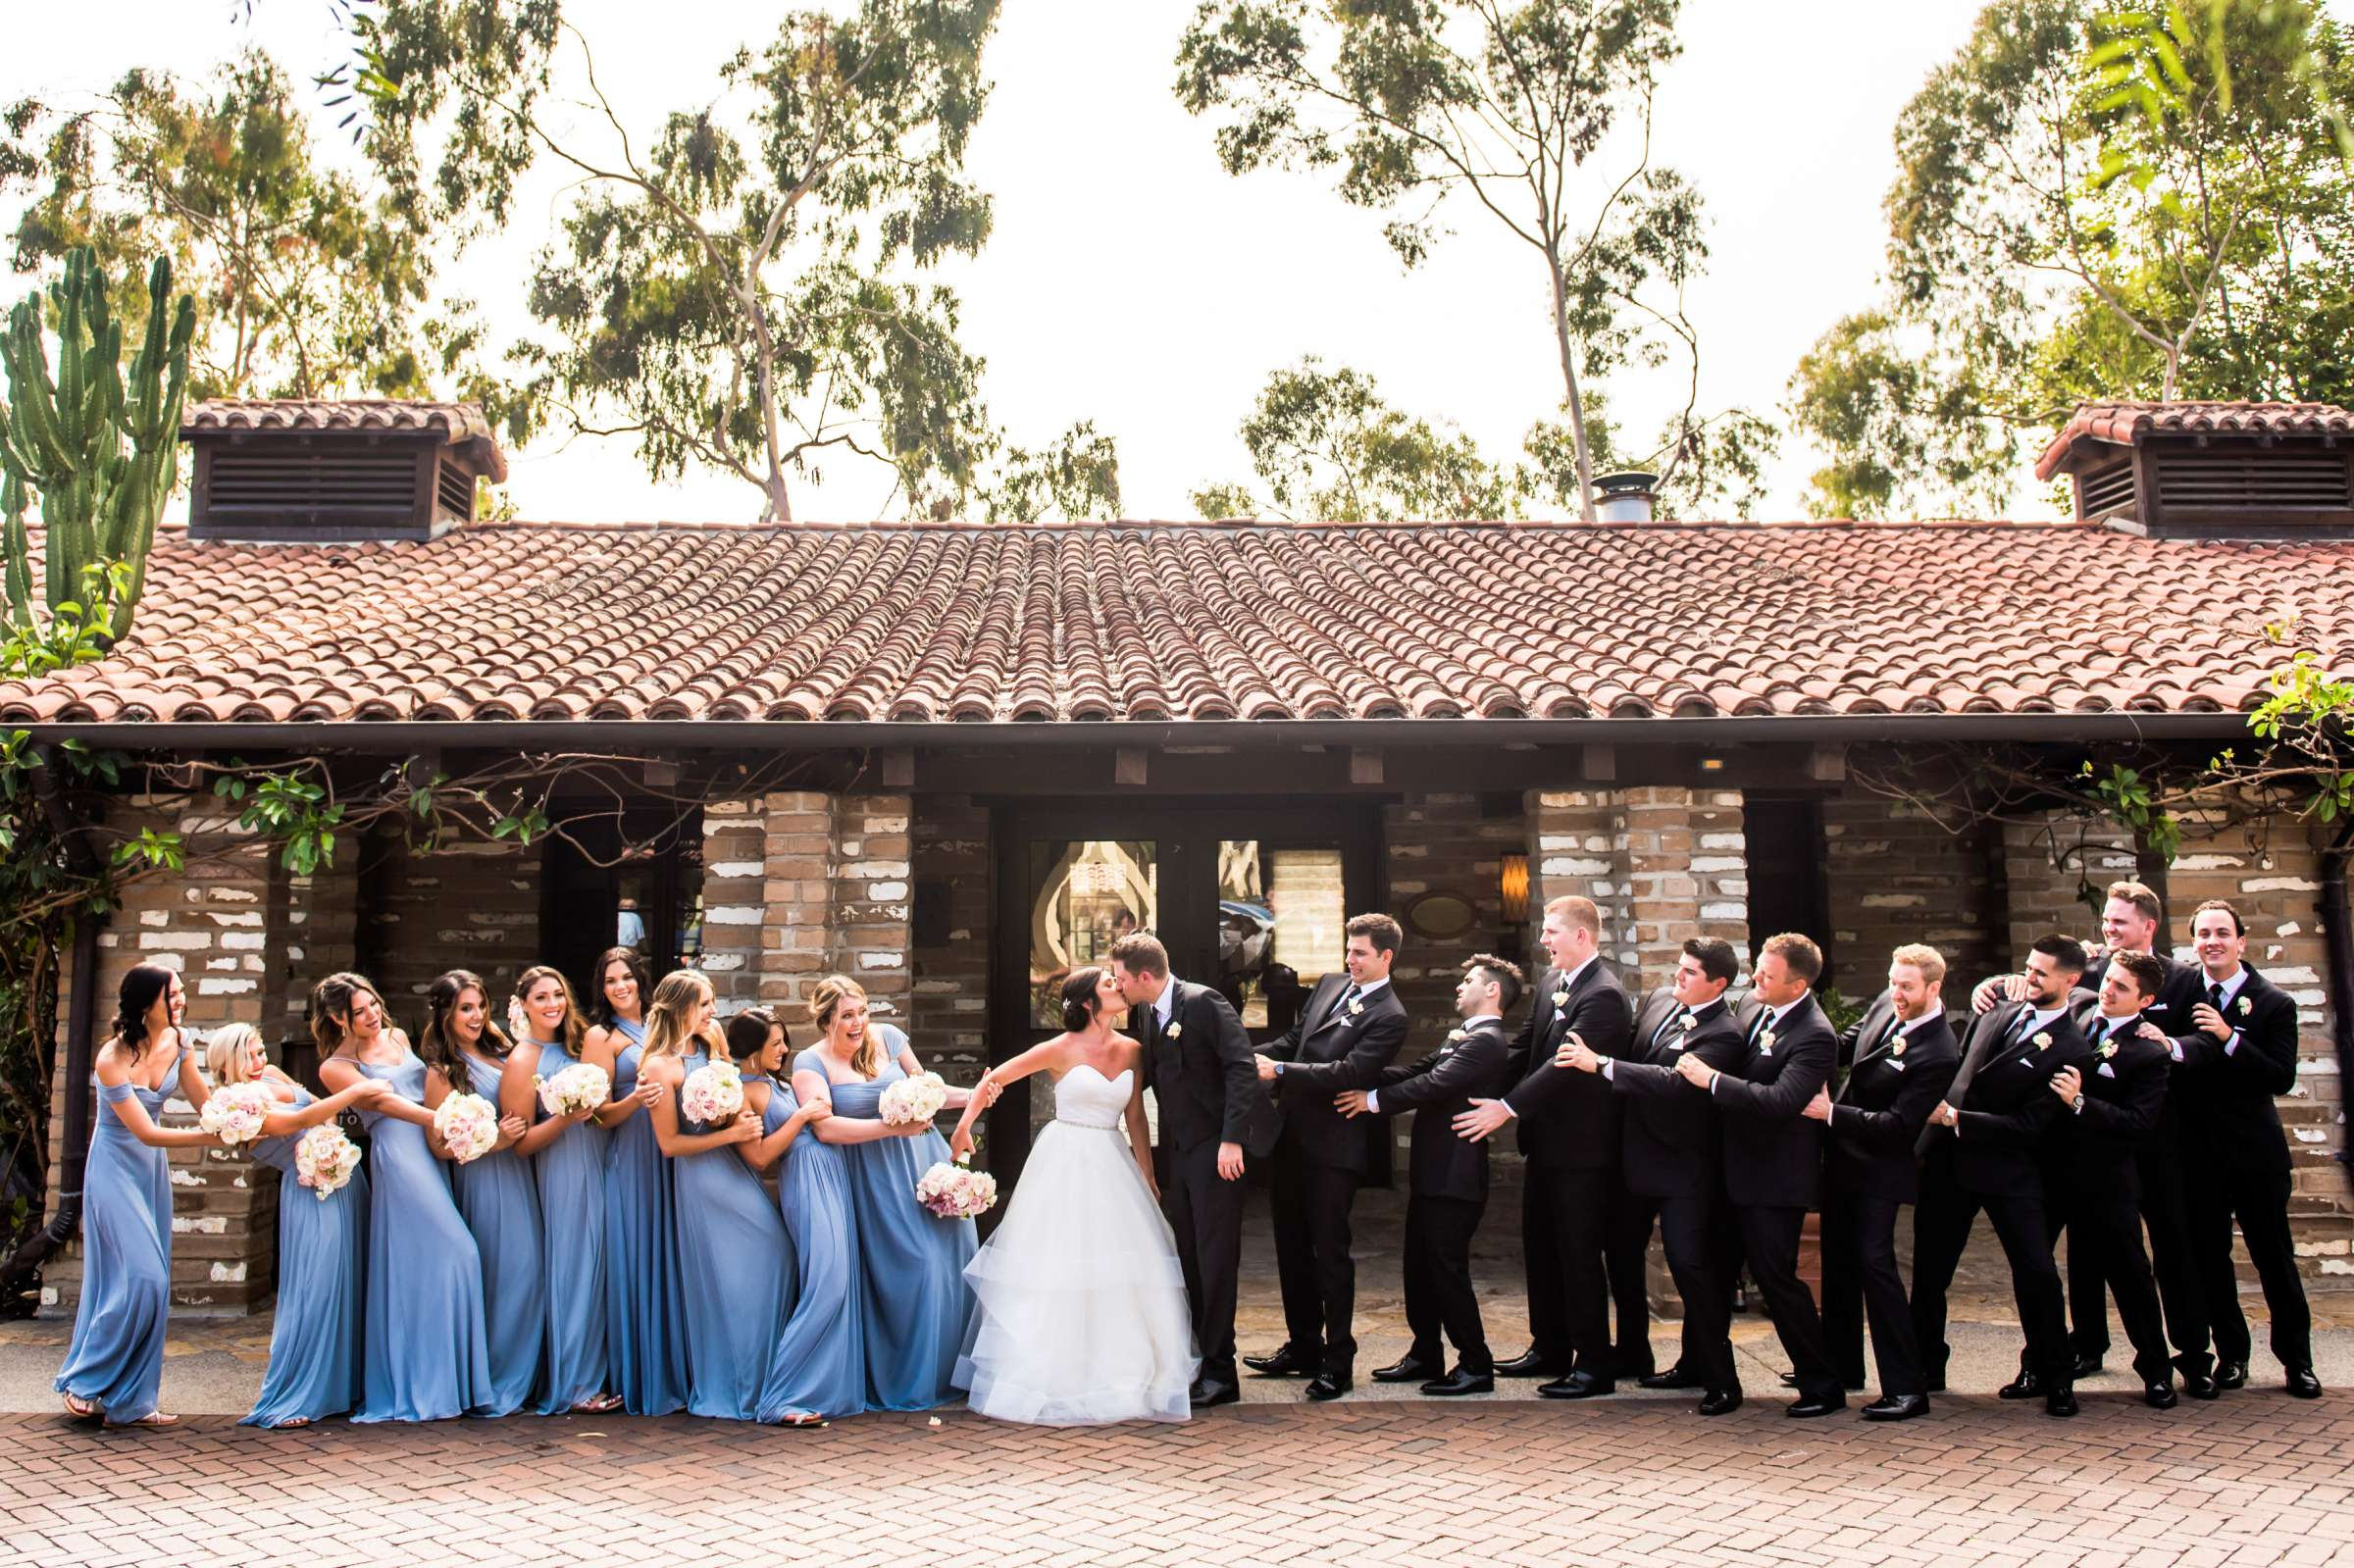 Estancia Wedding coordinated by White Lace Events & Design, Kelli and Guy Wedding Photo #111 by True Photography